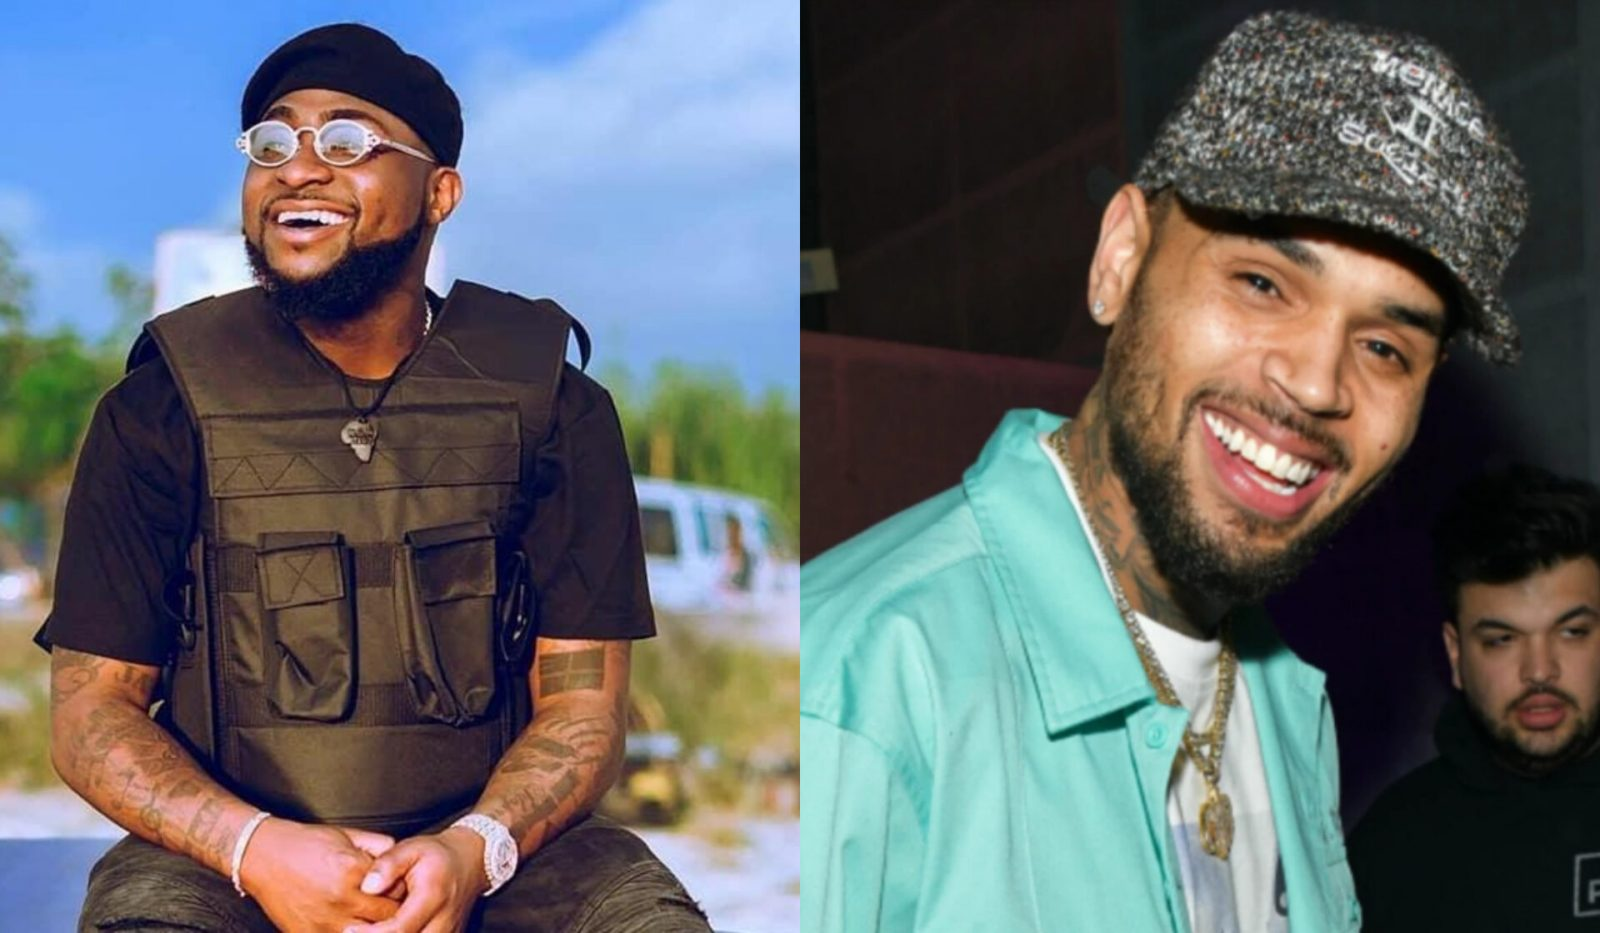 See Davido's Reaction After Chris Brown Picked His Song As One Of His Best